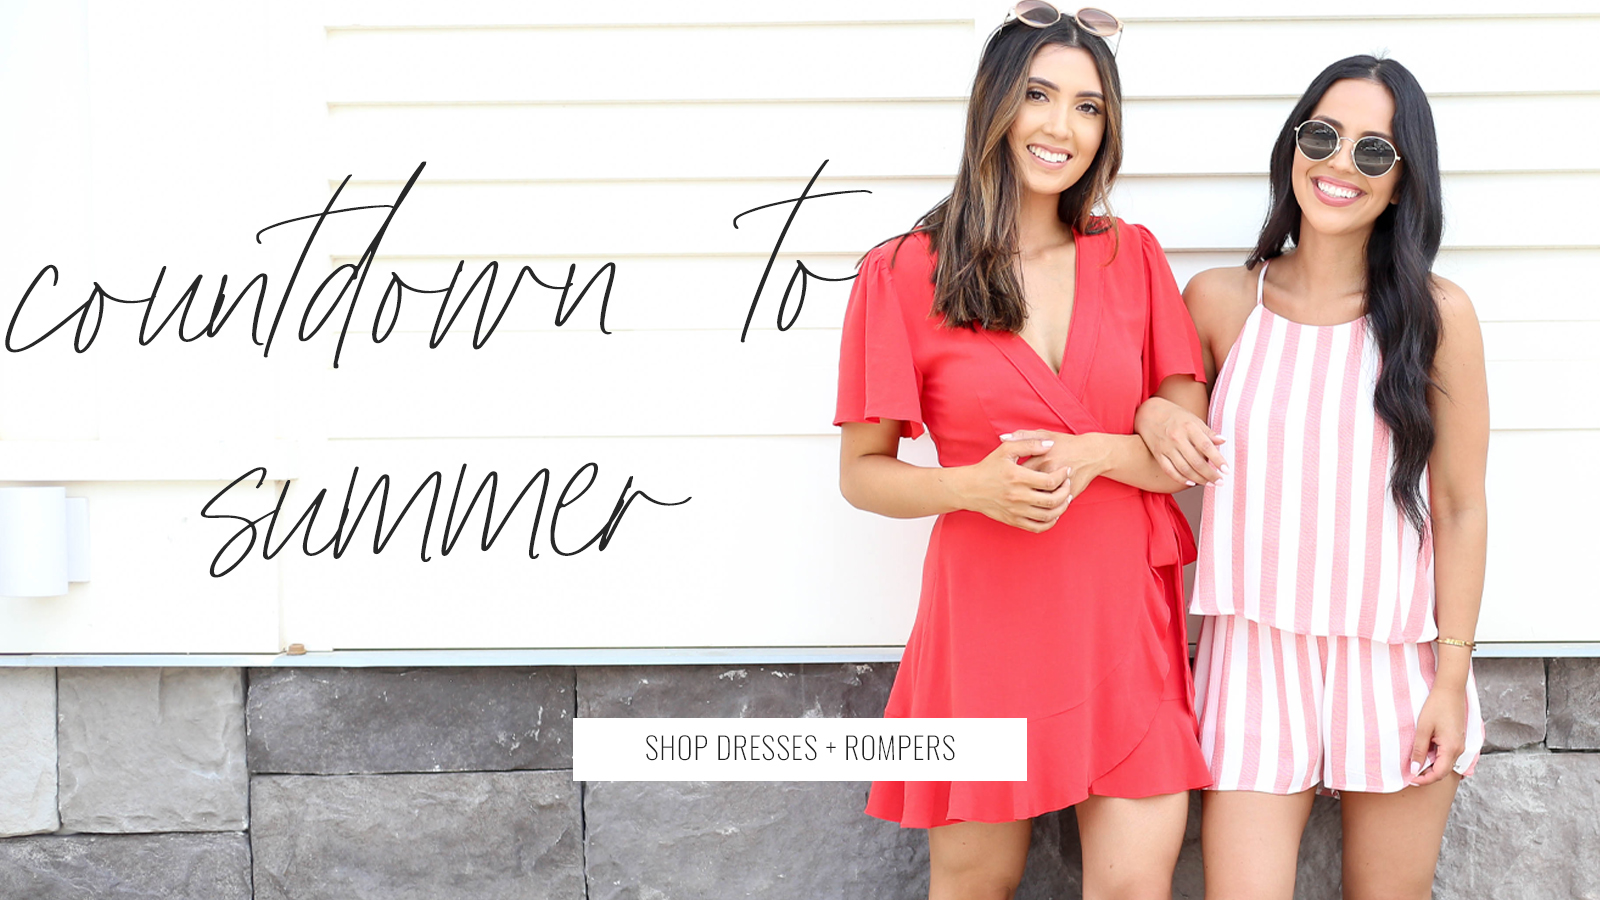 model one wearing a red mini dress and model two wearing a pink romper